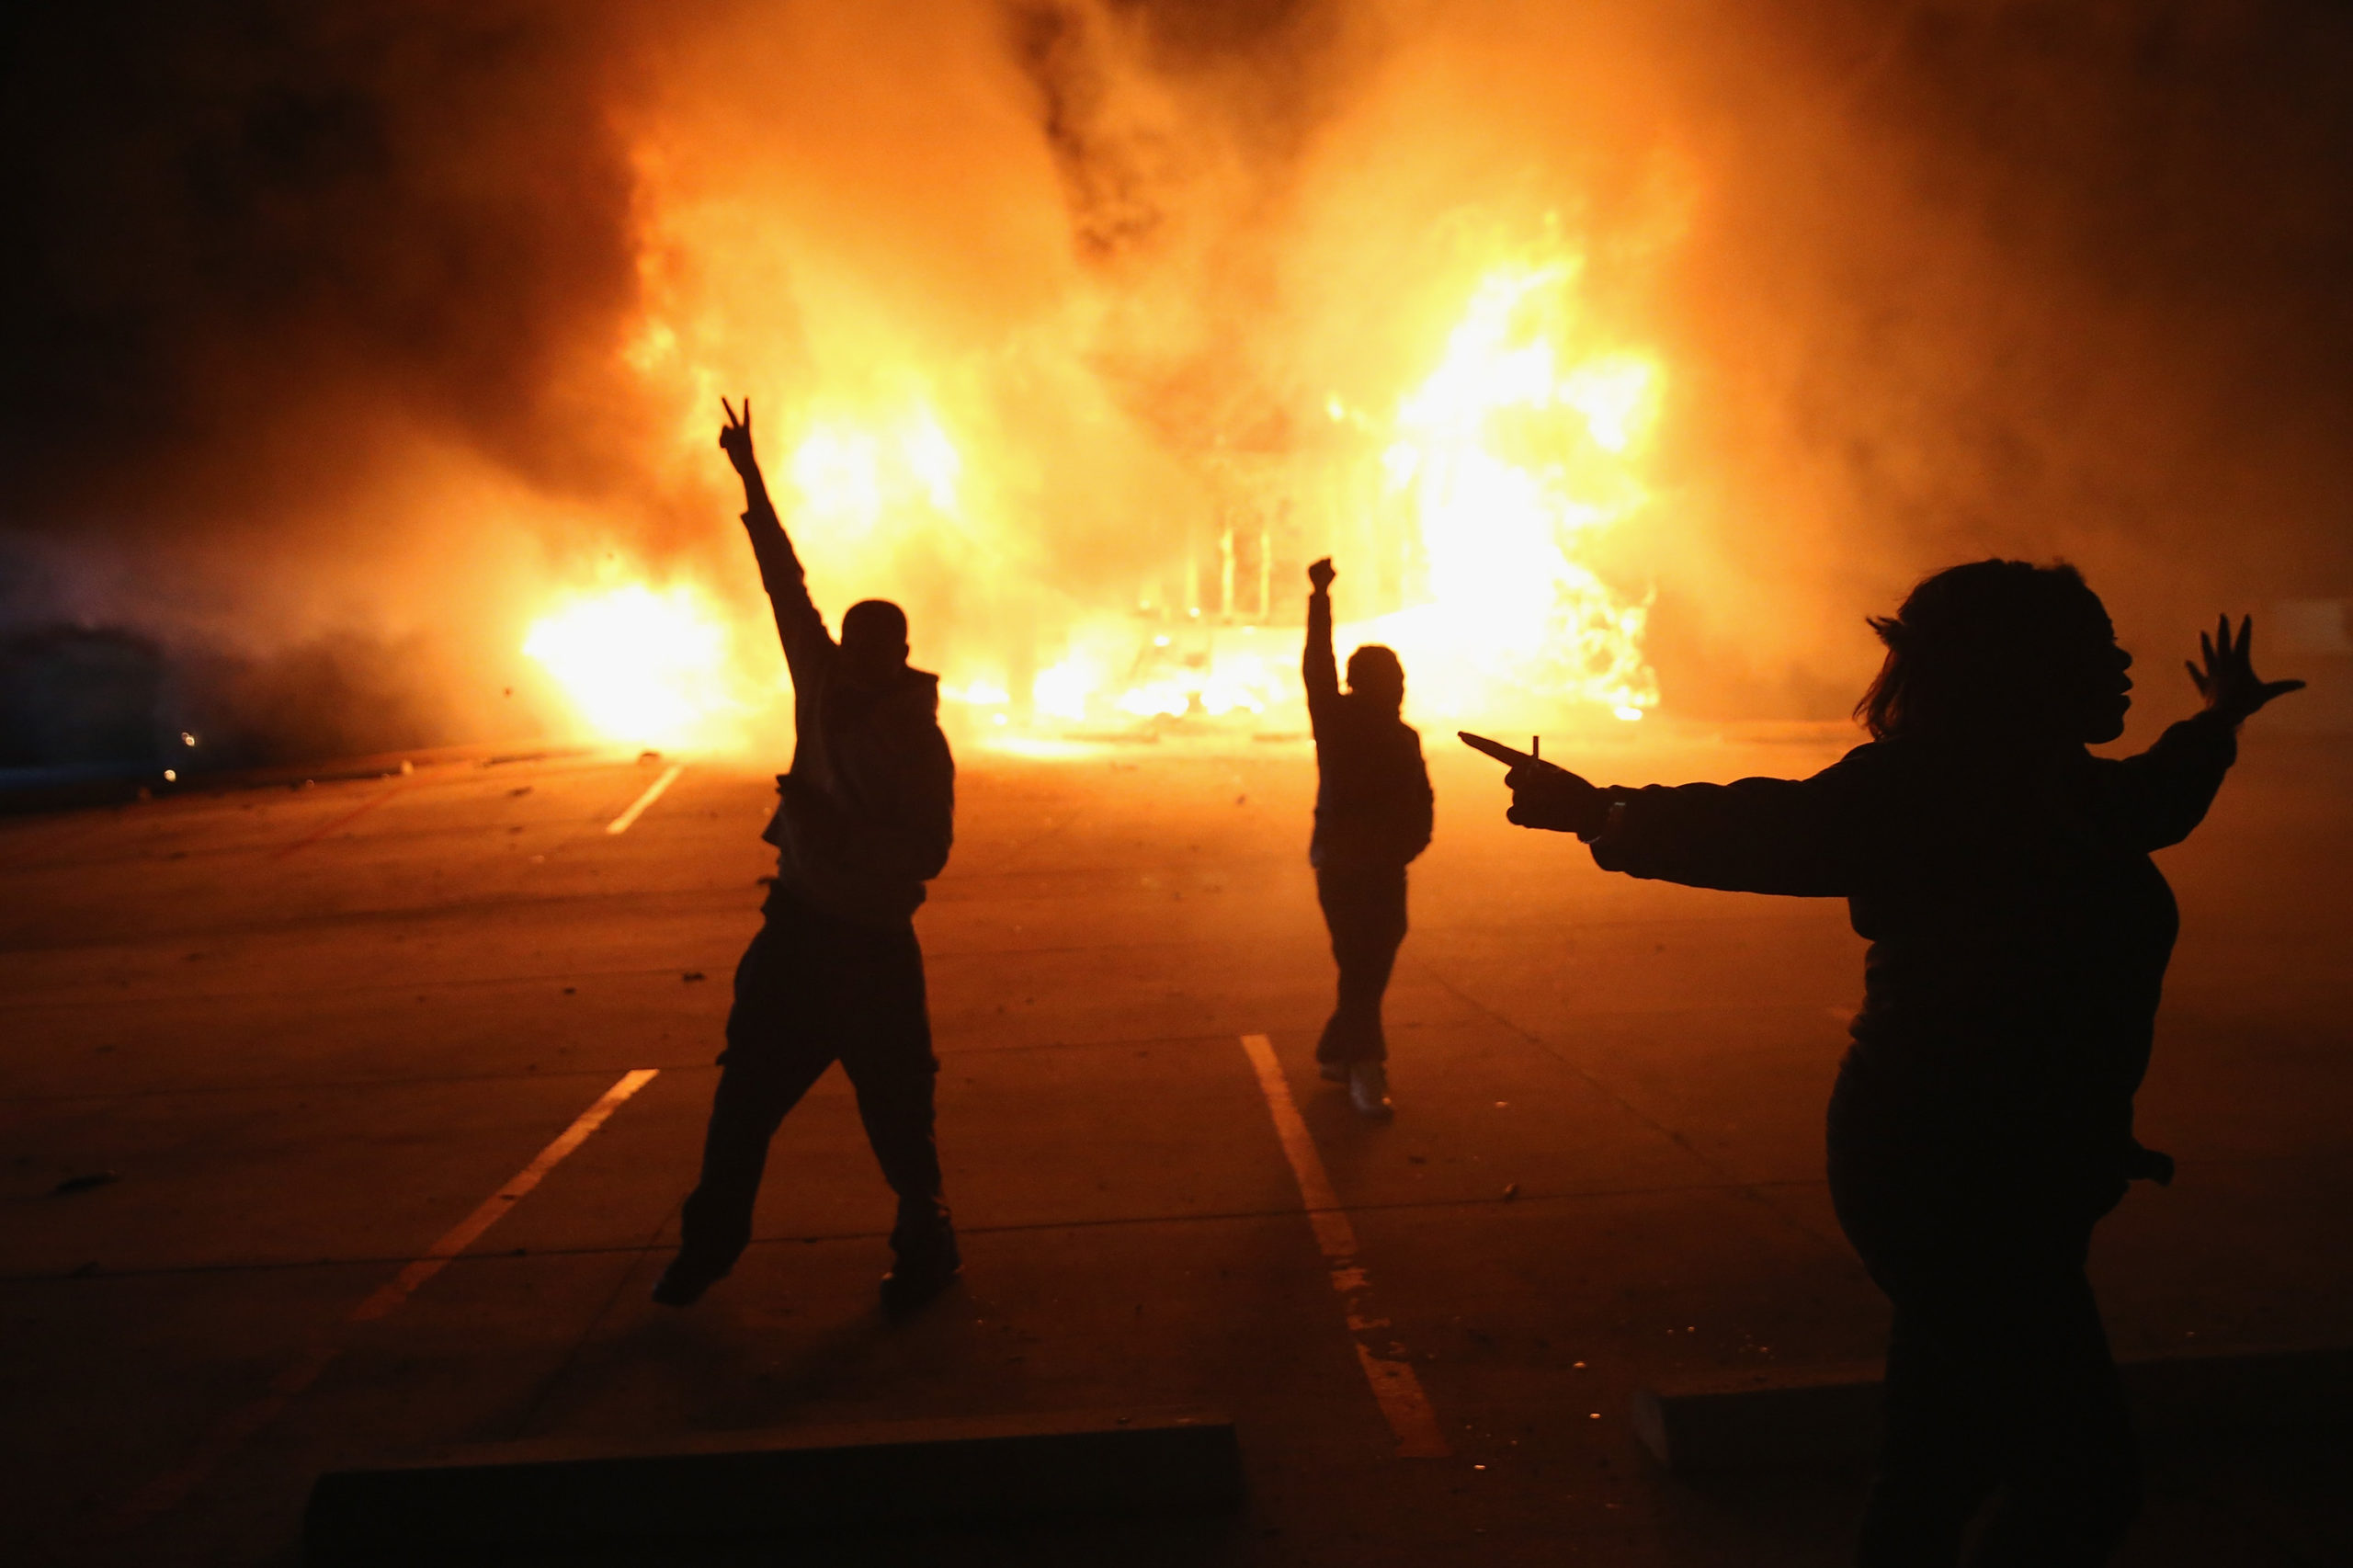 Demonstrators celebrate as a business burns after it was set on fire during rioting following the grand jury announcement in the Michael Brown case on November 24, 2014 in Ferguson, Missouri. (Photo by Scott Olson/Getty Images)